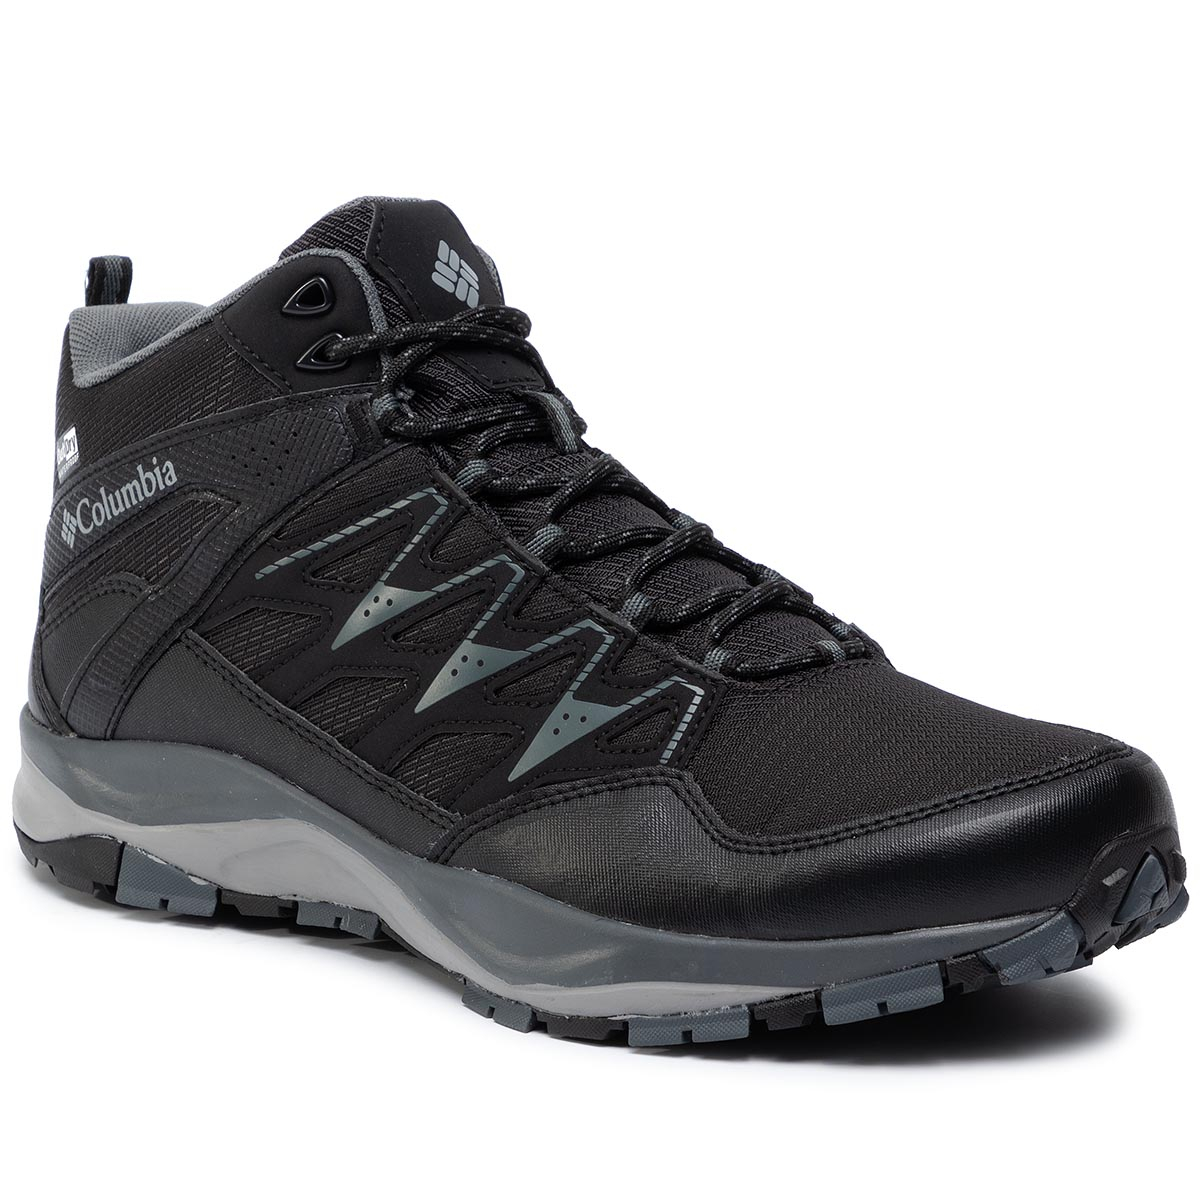 Trekkings Columbia - Wayfinder Mid Outdry Bm1900 Black/Steam 012 imagine epantofi.ro 2021